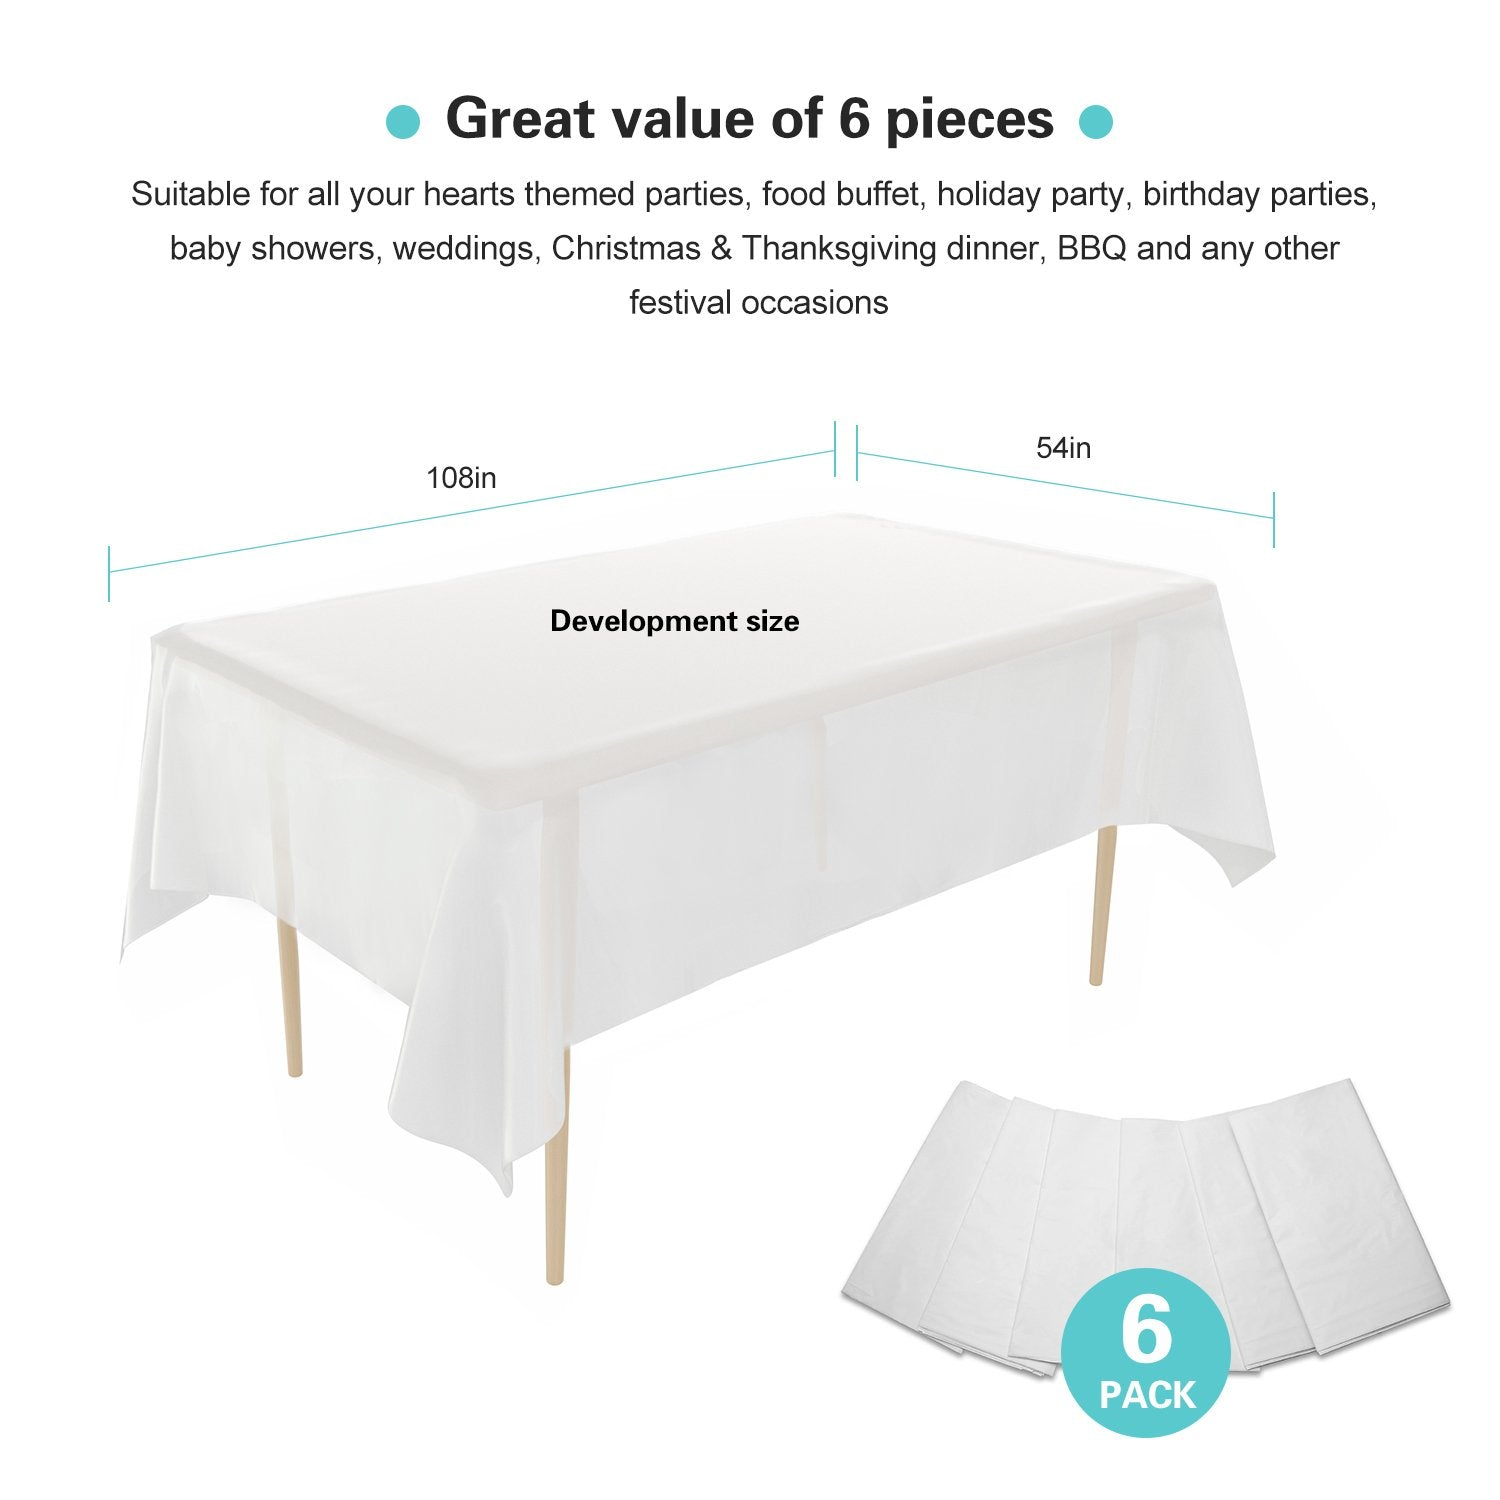 6 Pack Disposable Plastic Tablecloths 54 x 108"